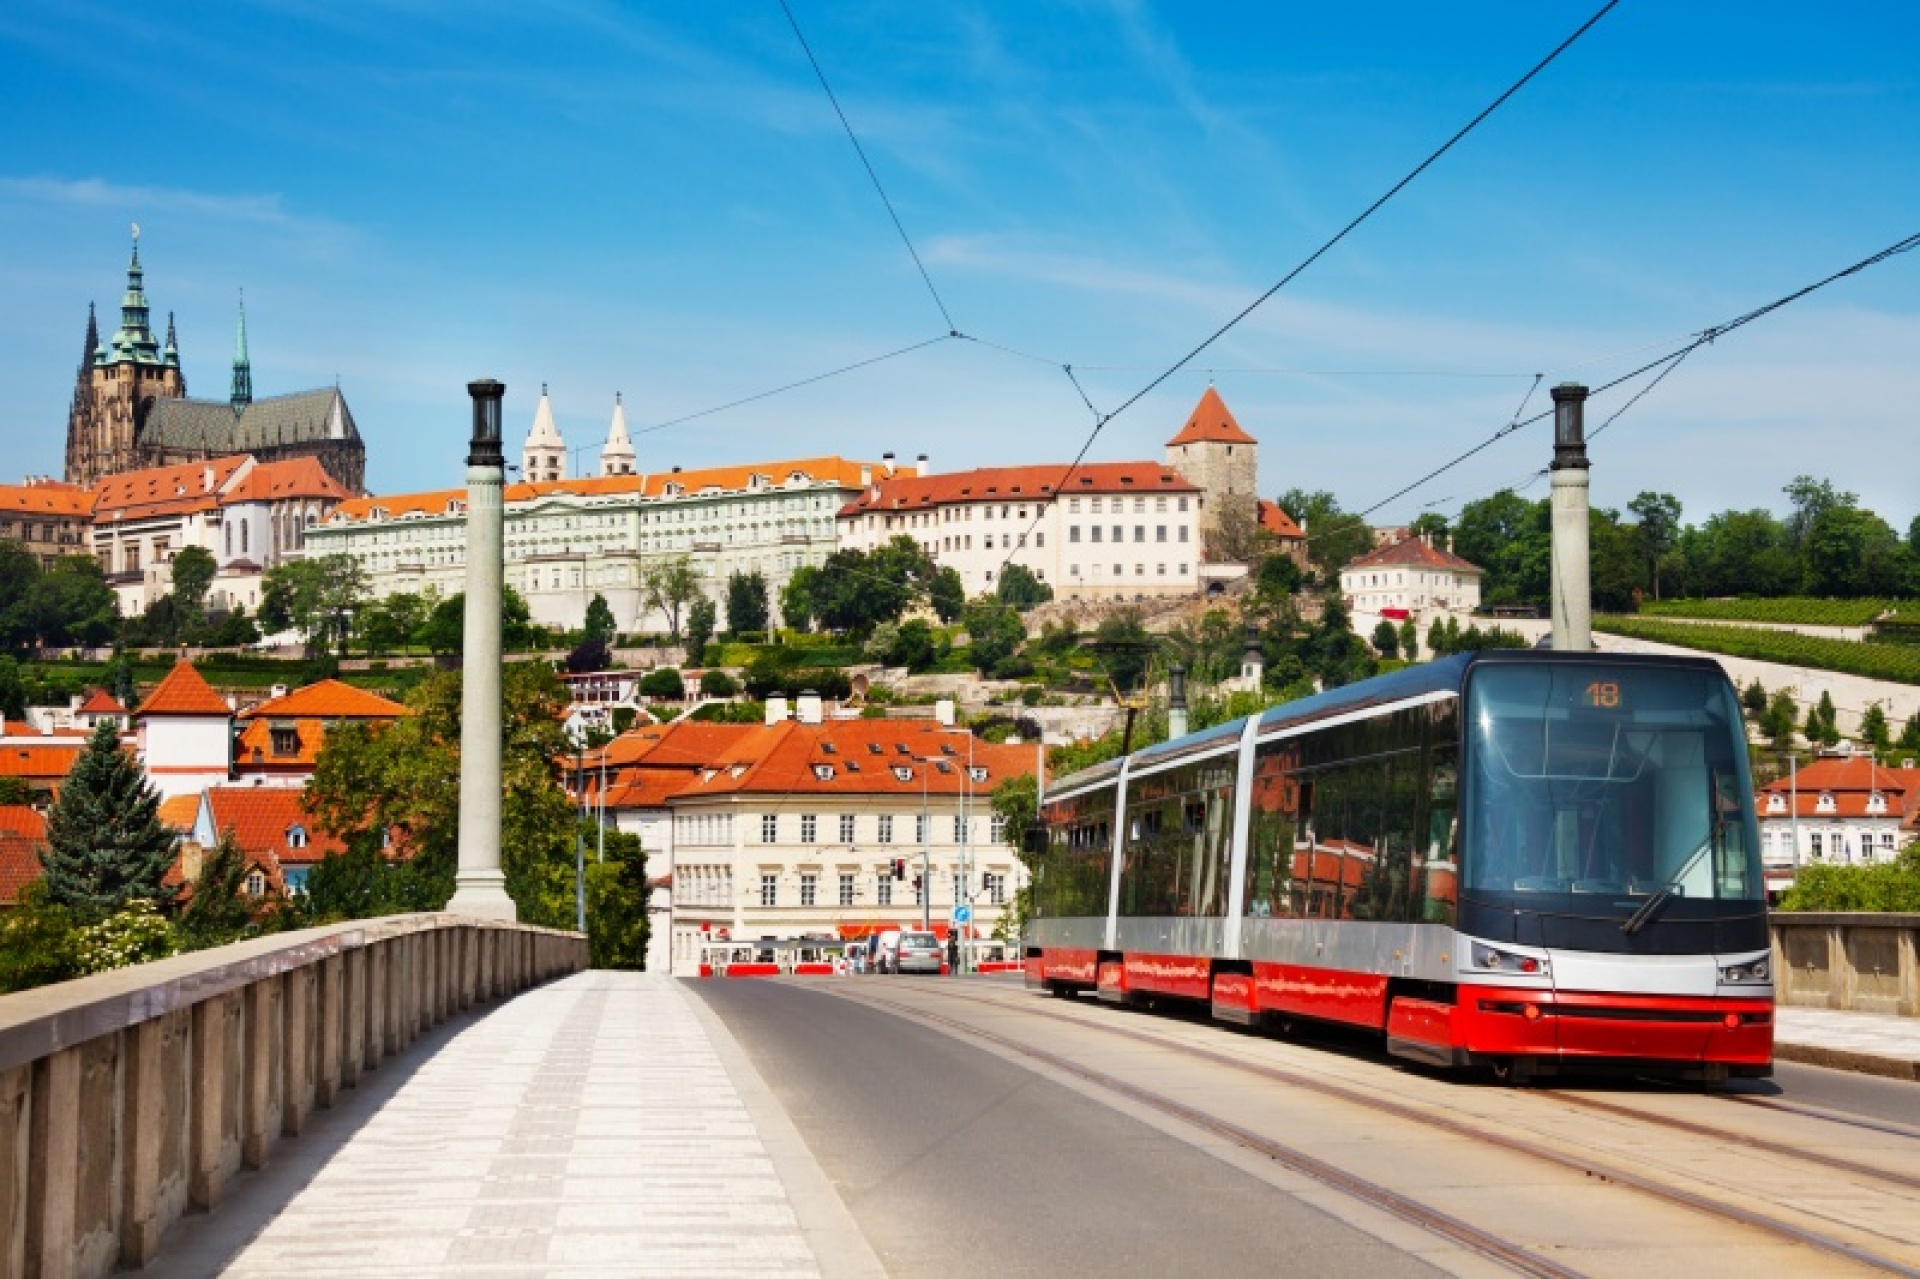 tram and panorama of Prague Castle